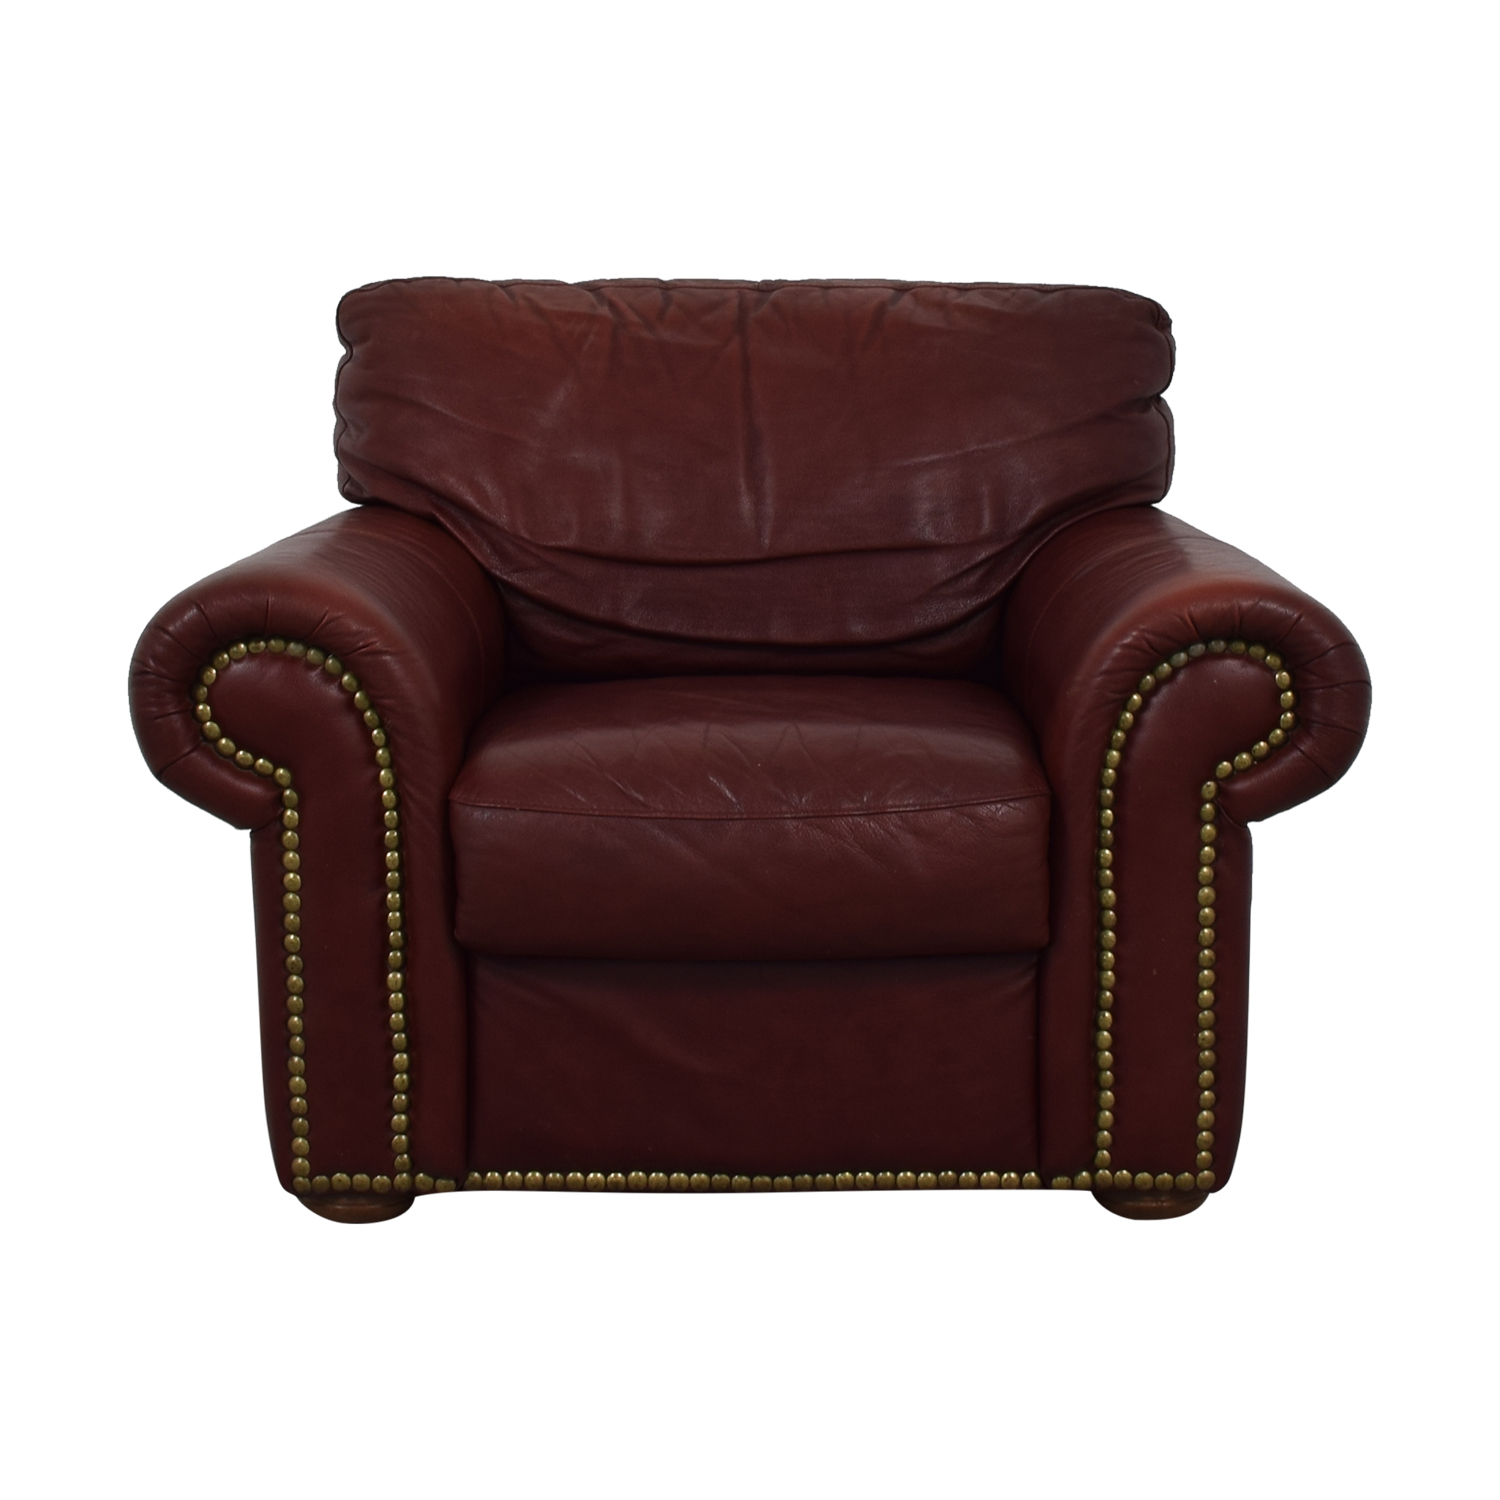 Macy's Burgundy Nail Head Accent Chair / Accent Chairs